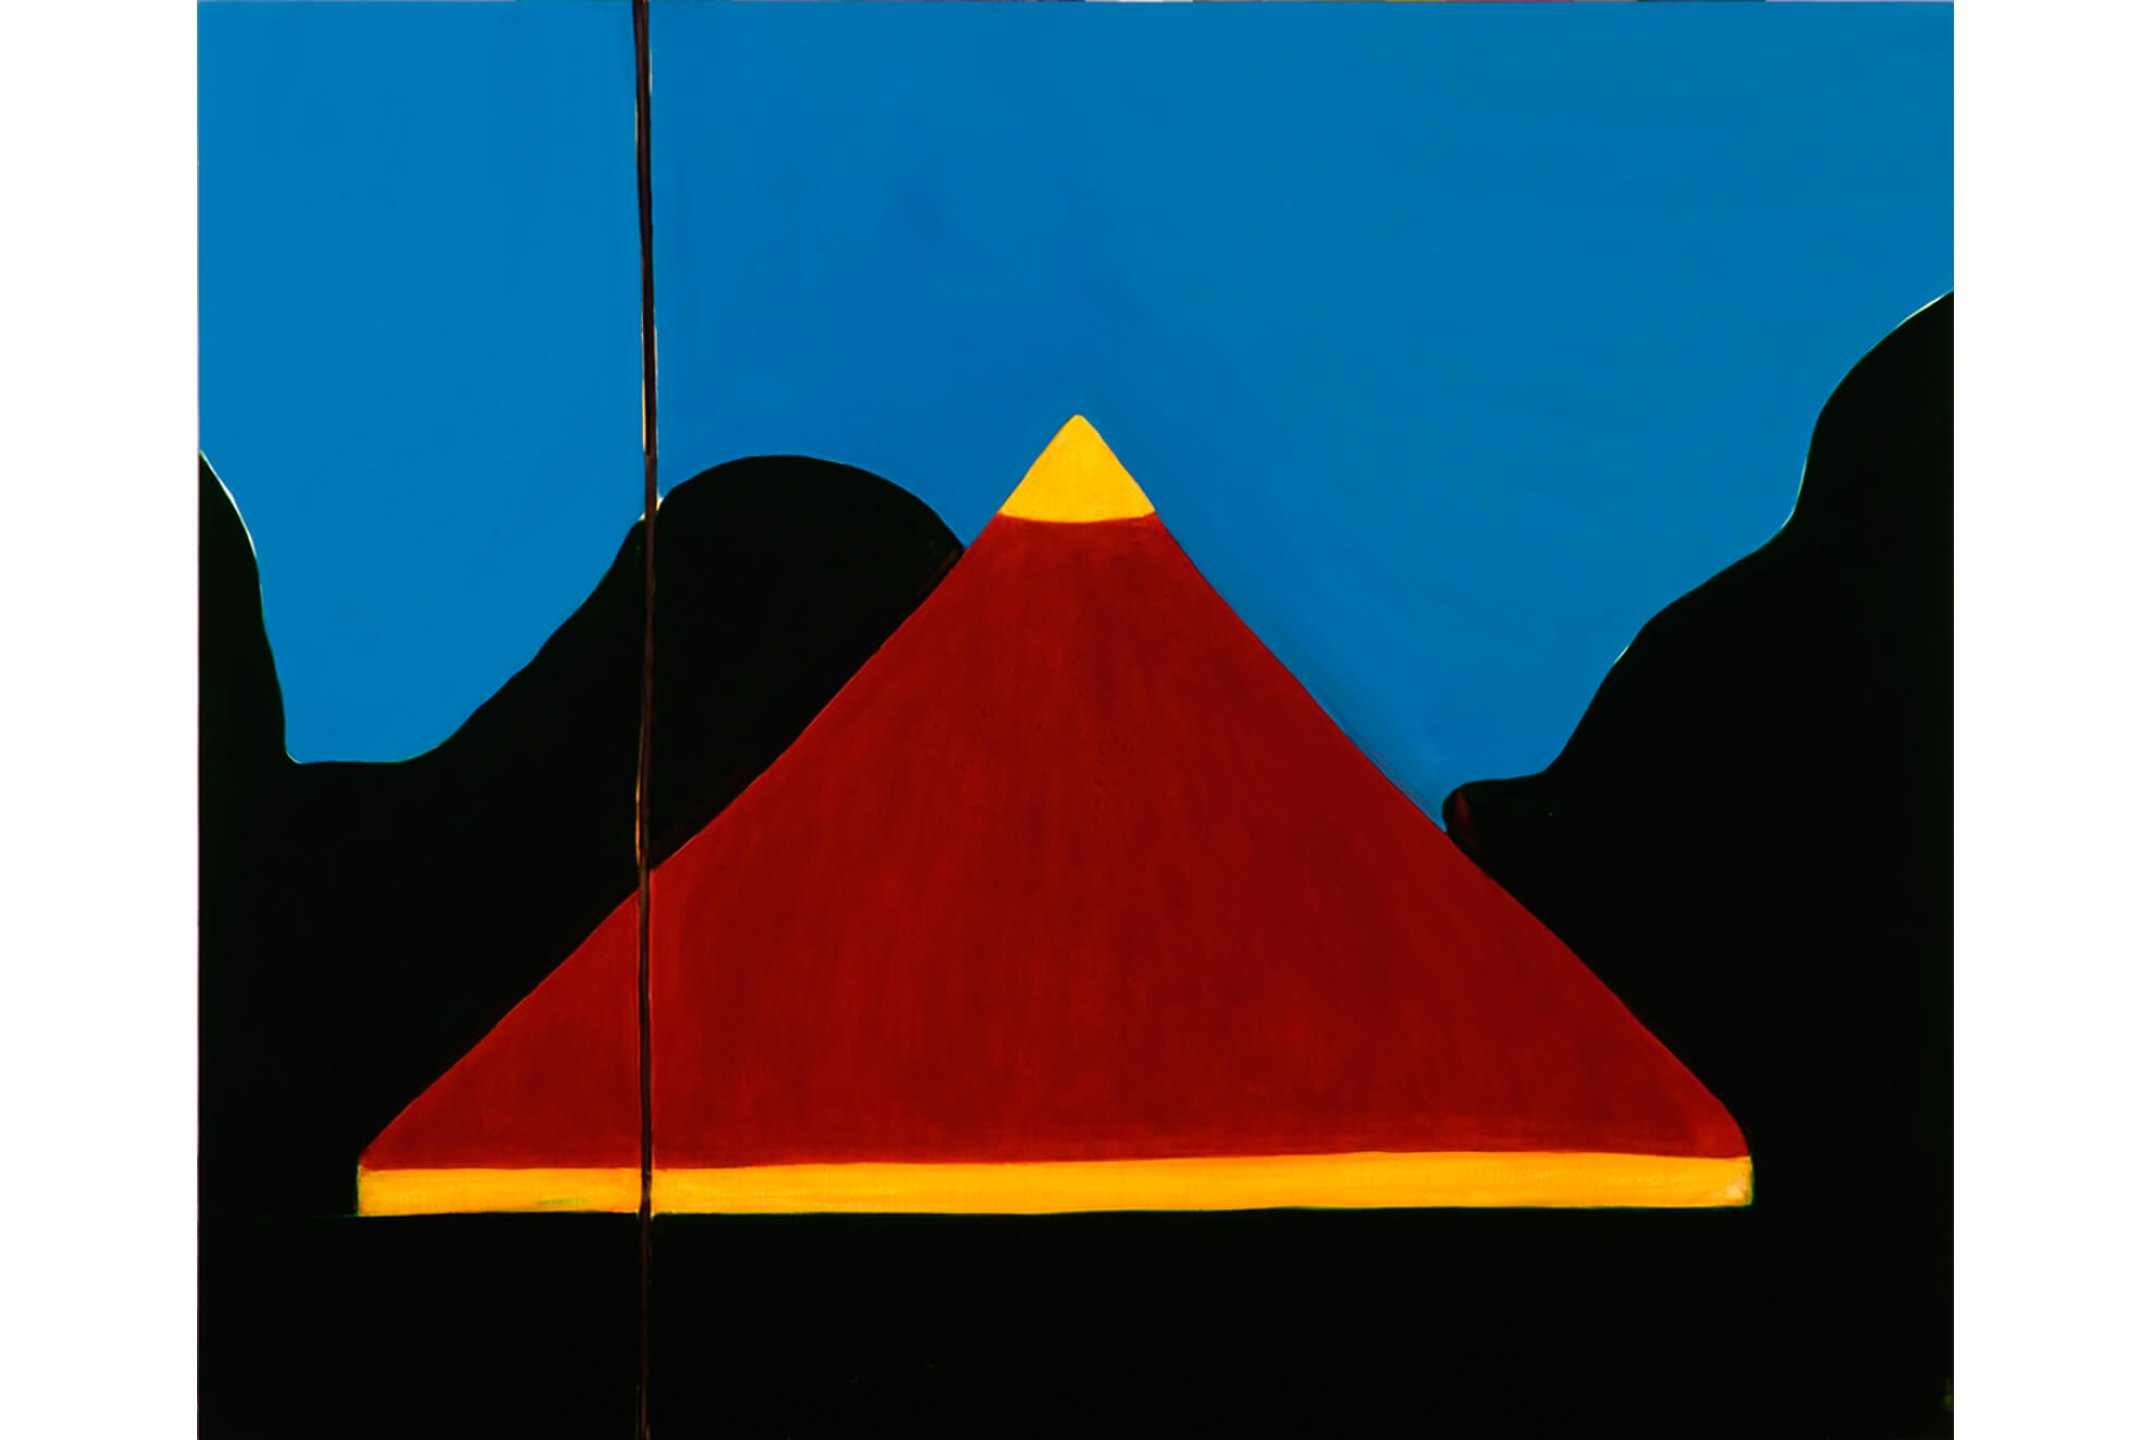 Patricia Leite,&nbsp;<em>Untitled (Li Canvas),</em>&nbsp;2009, oil on wood, 90 ×&nbsp;110 cm - Mendes Wood DM